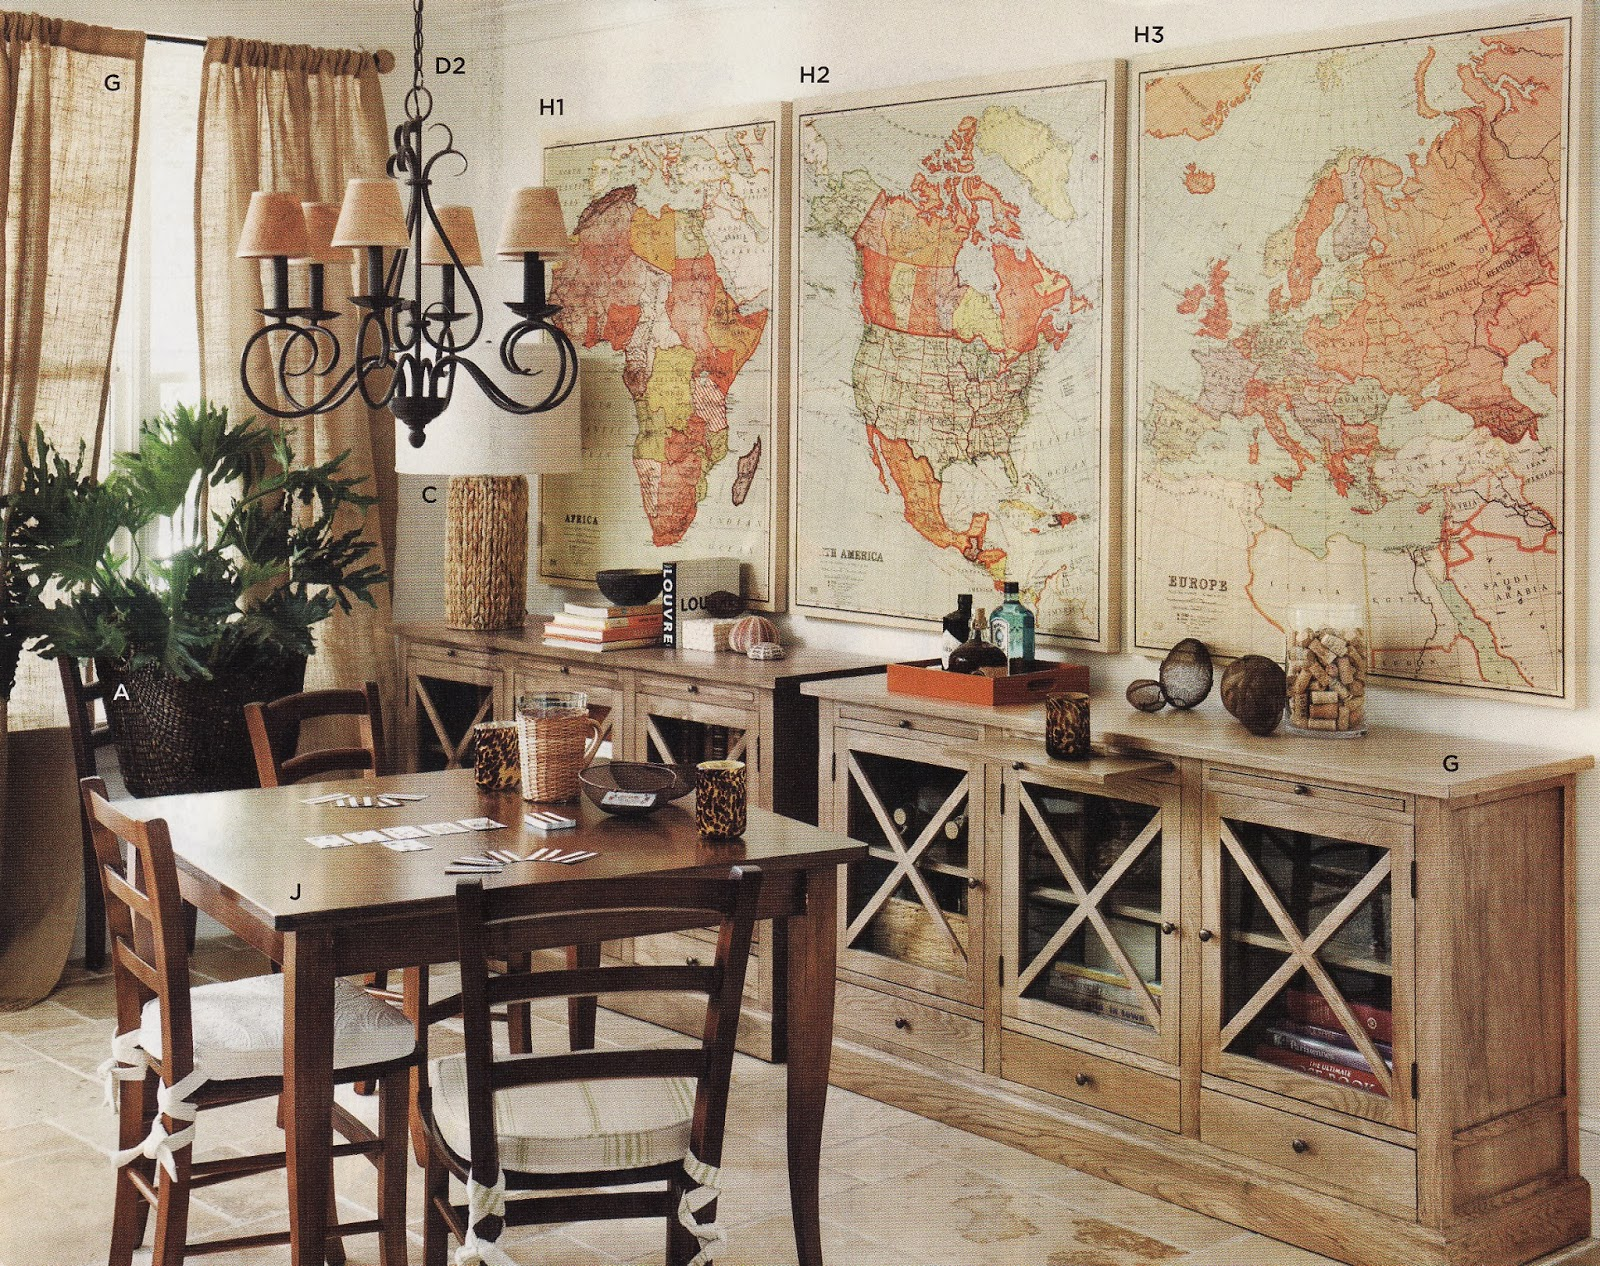 Creative juices decor oh for the love of maps home for House and home decorating